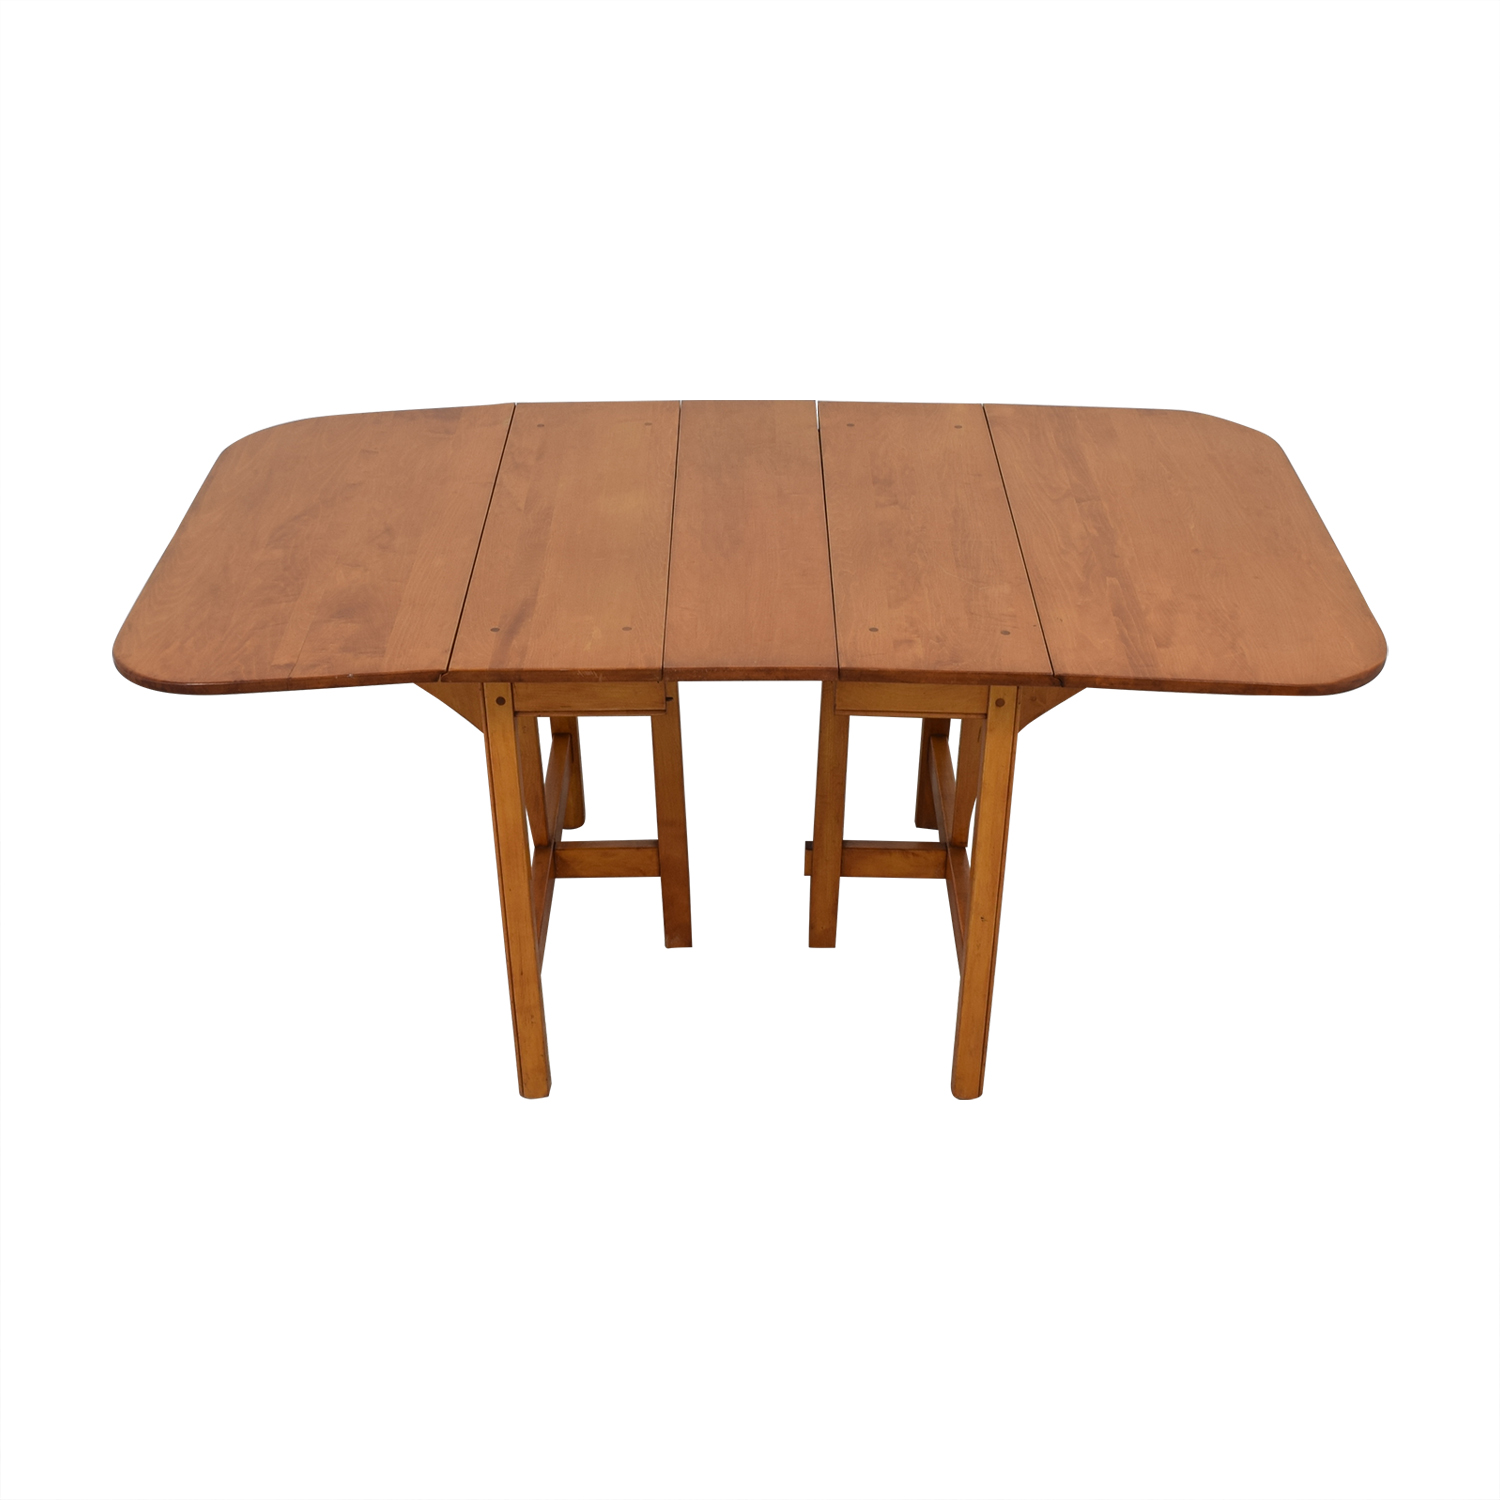 Drop Leaf Solid Maple Dinner Table dimensions